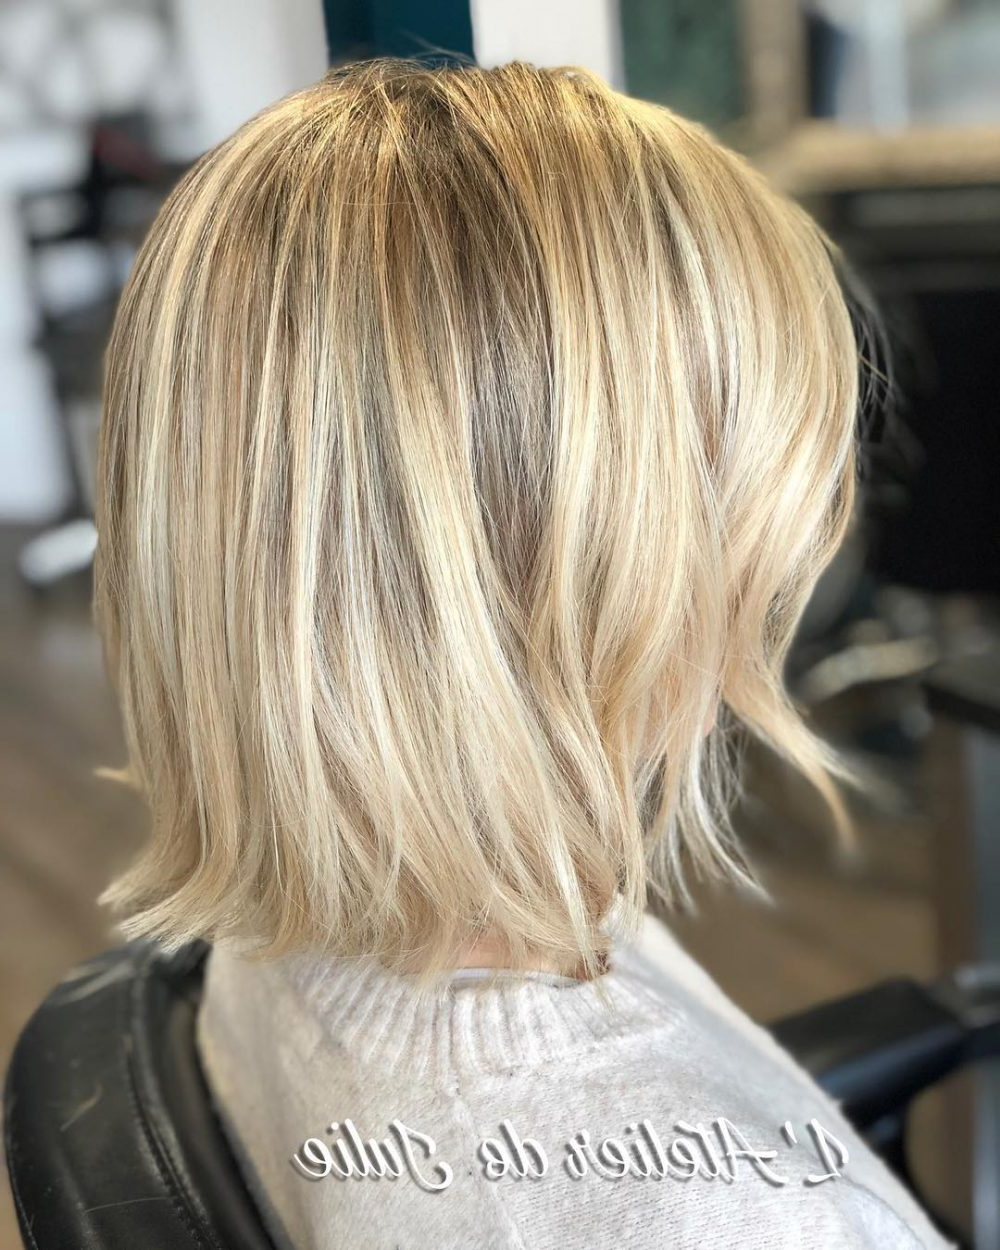 34 Perfect Short Haircuts And Hairstyles For Thin Hair (2018) Inside Medium To Short Haircuts For Thin Hair (View 3 of 25)